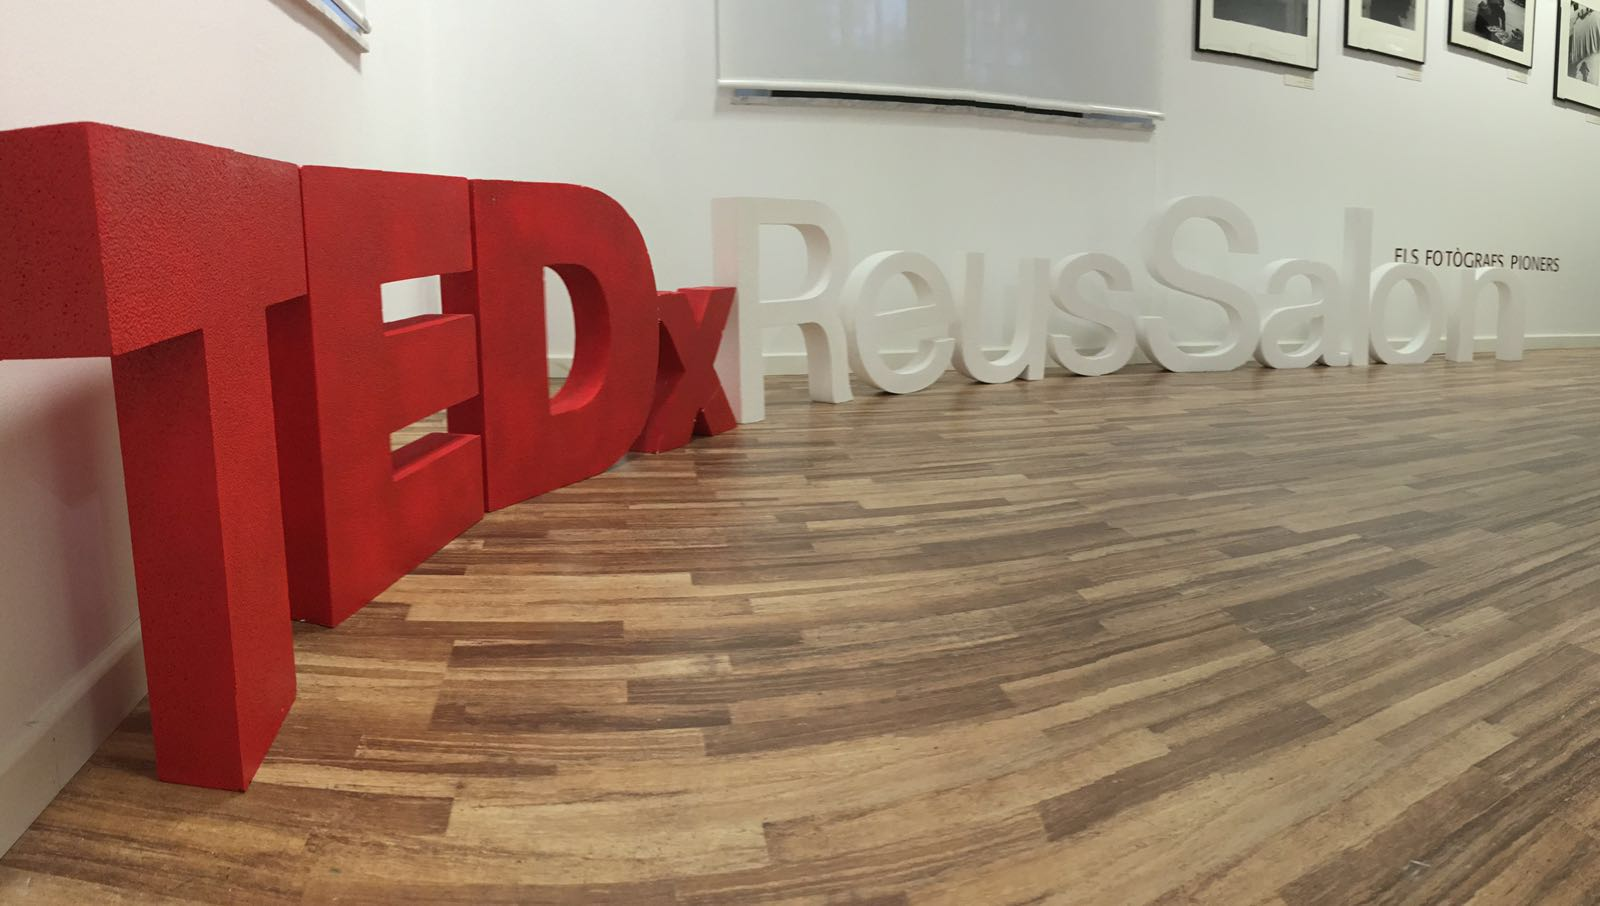 TEDxReusSalon 7th july, 2016